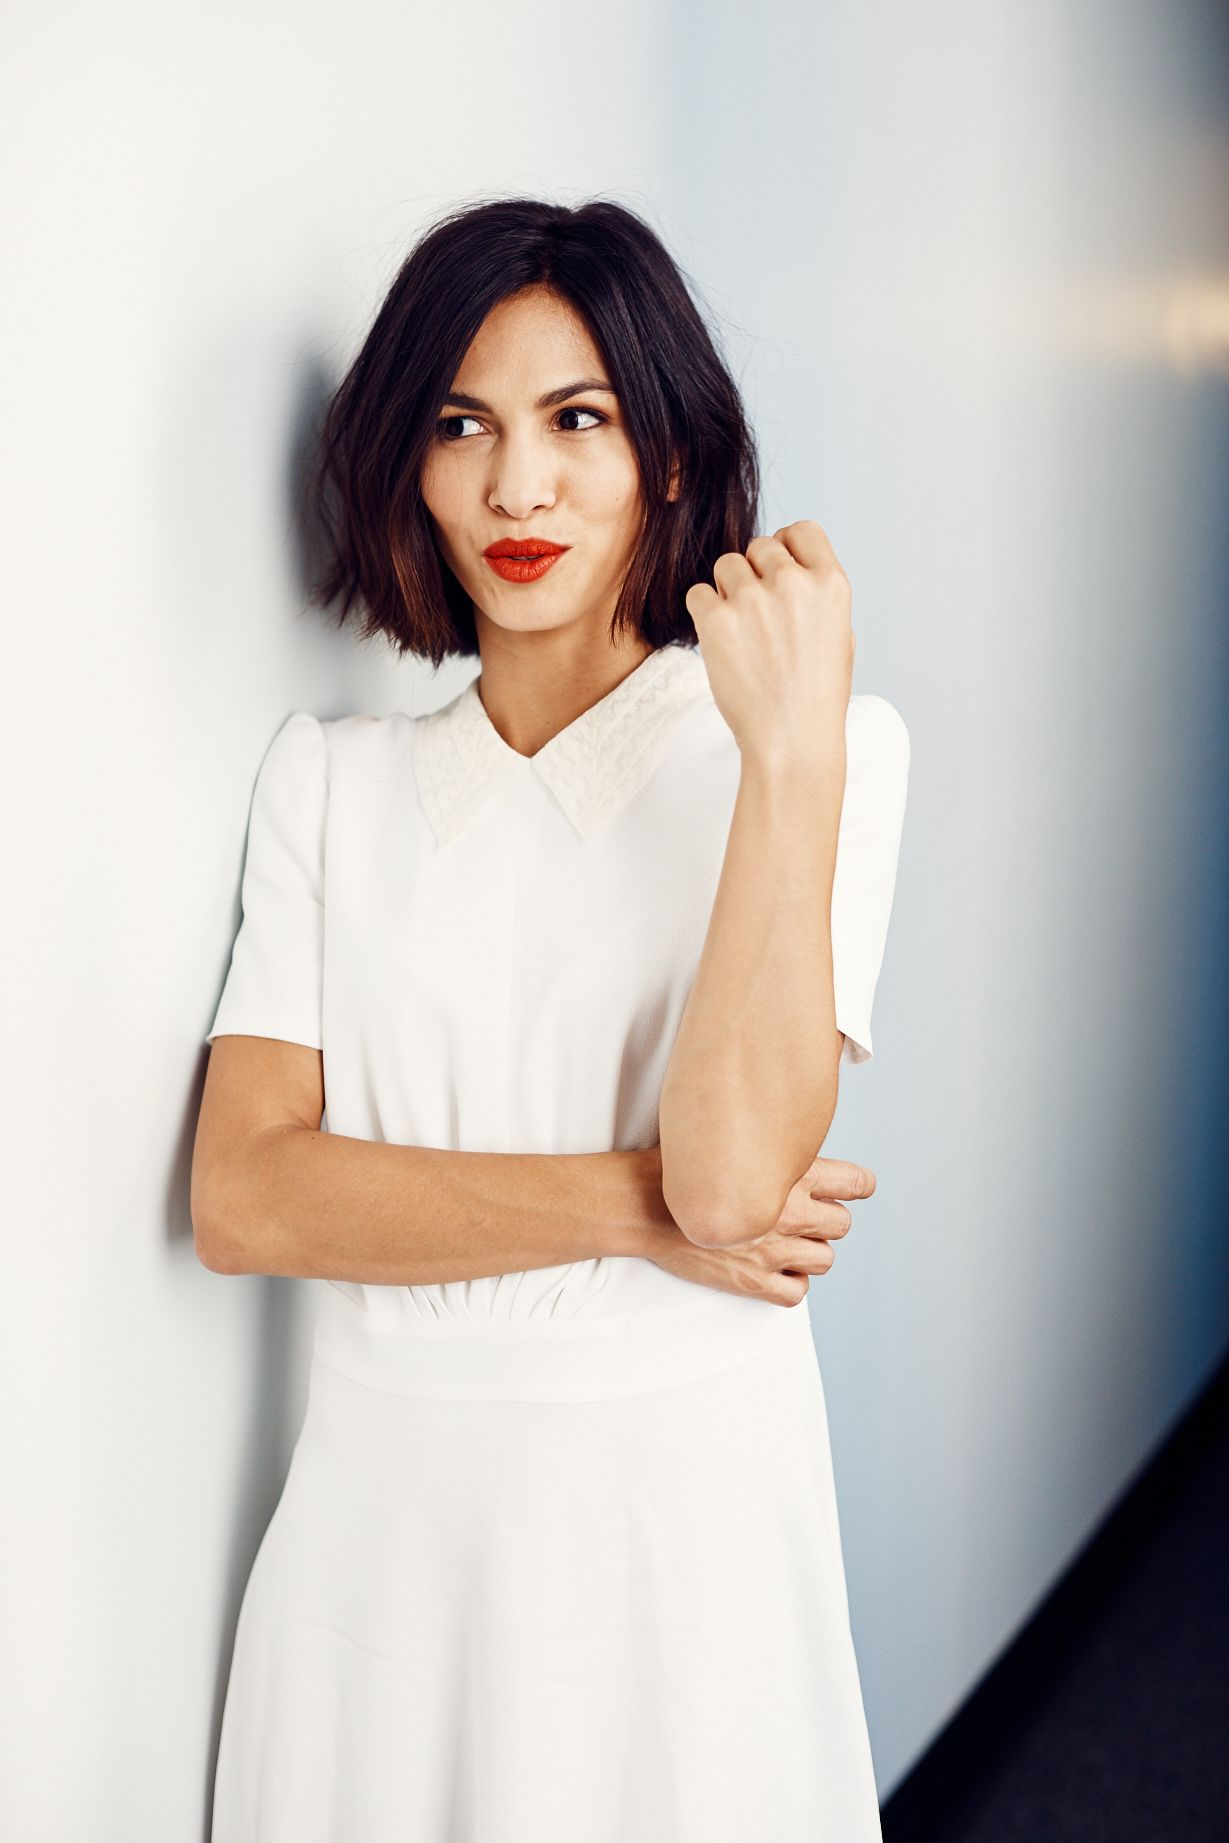 3f07579f941 Elodie Yung recently shared the key to her French girl style and some  details about the Netflix show